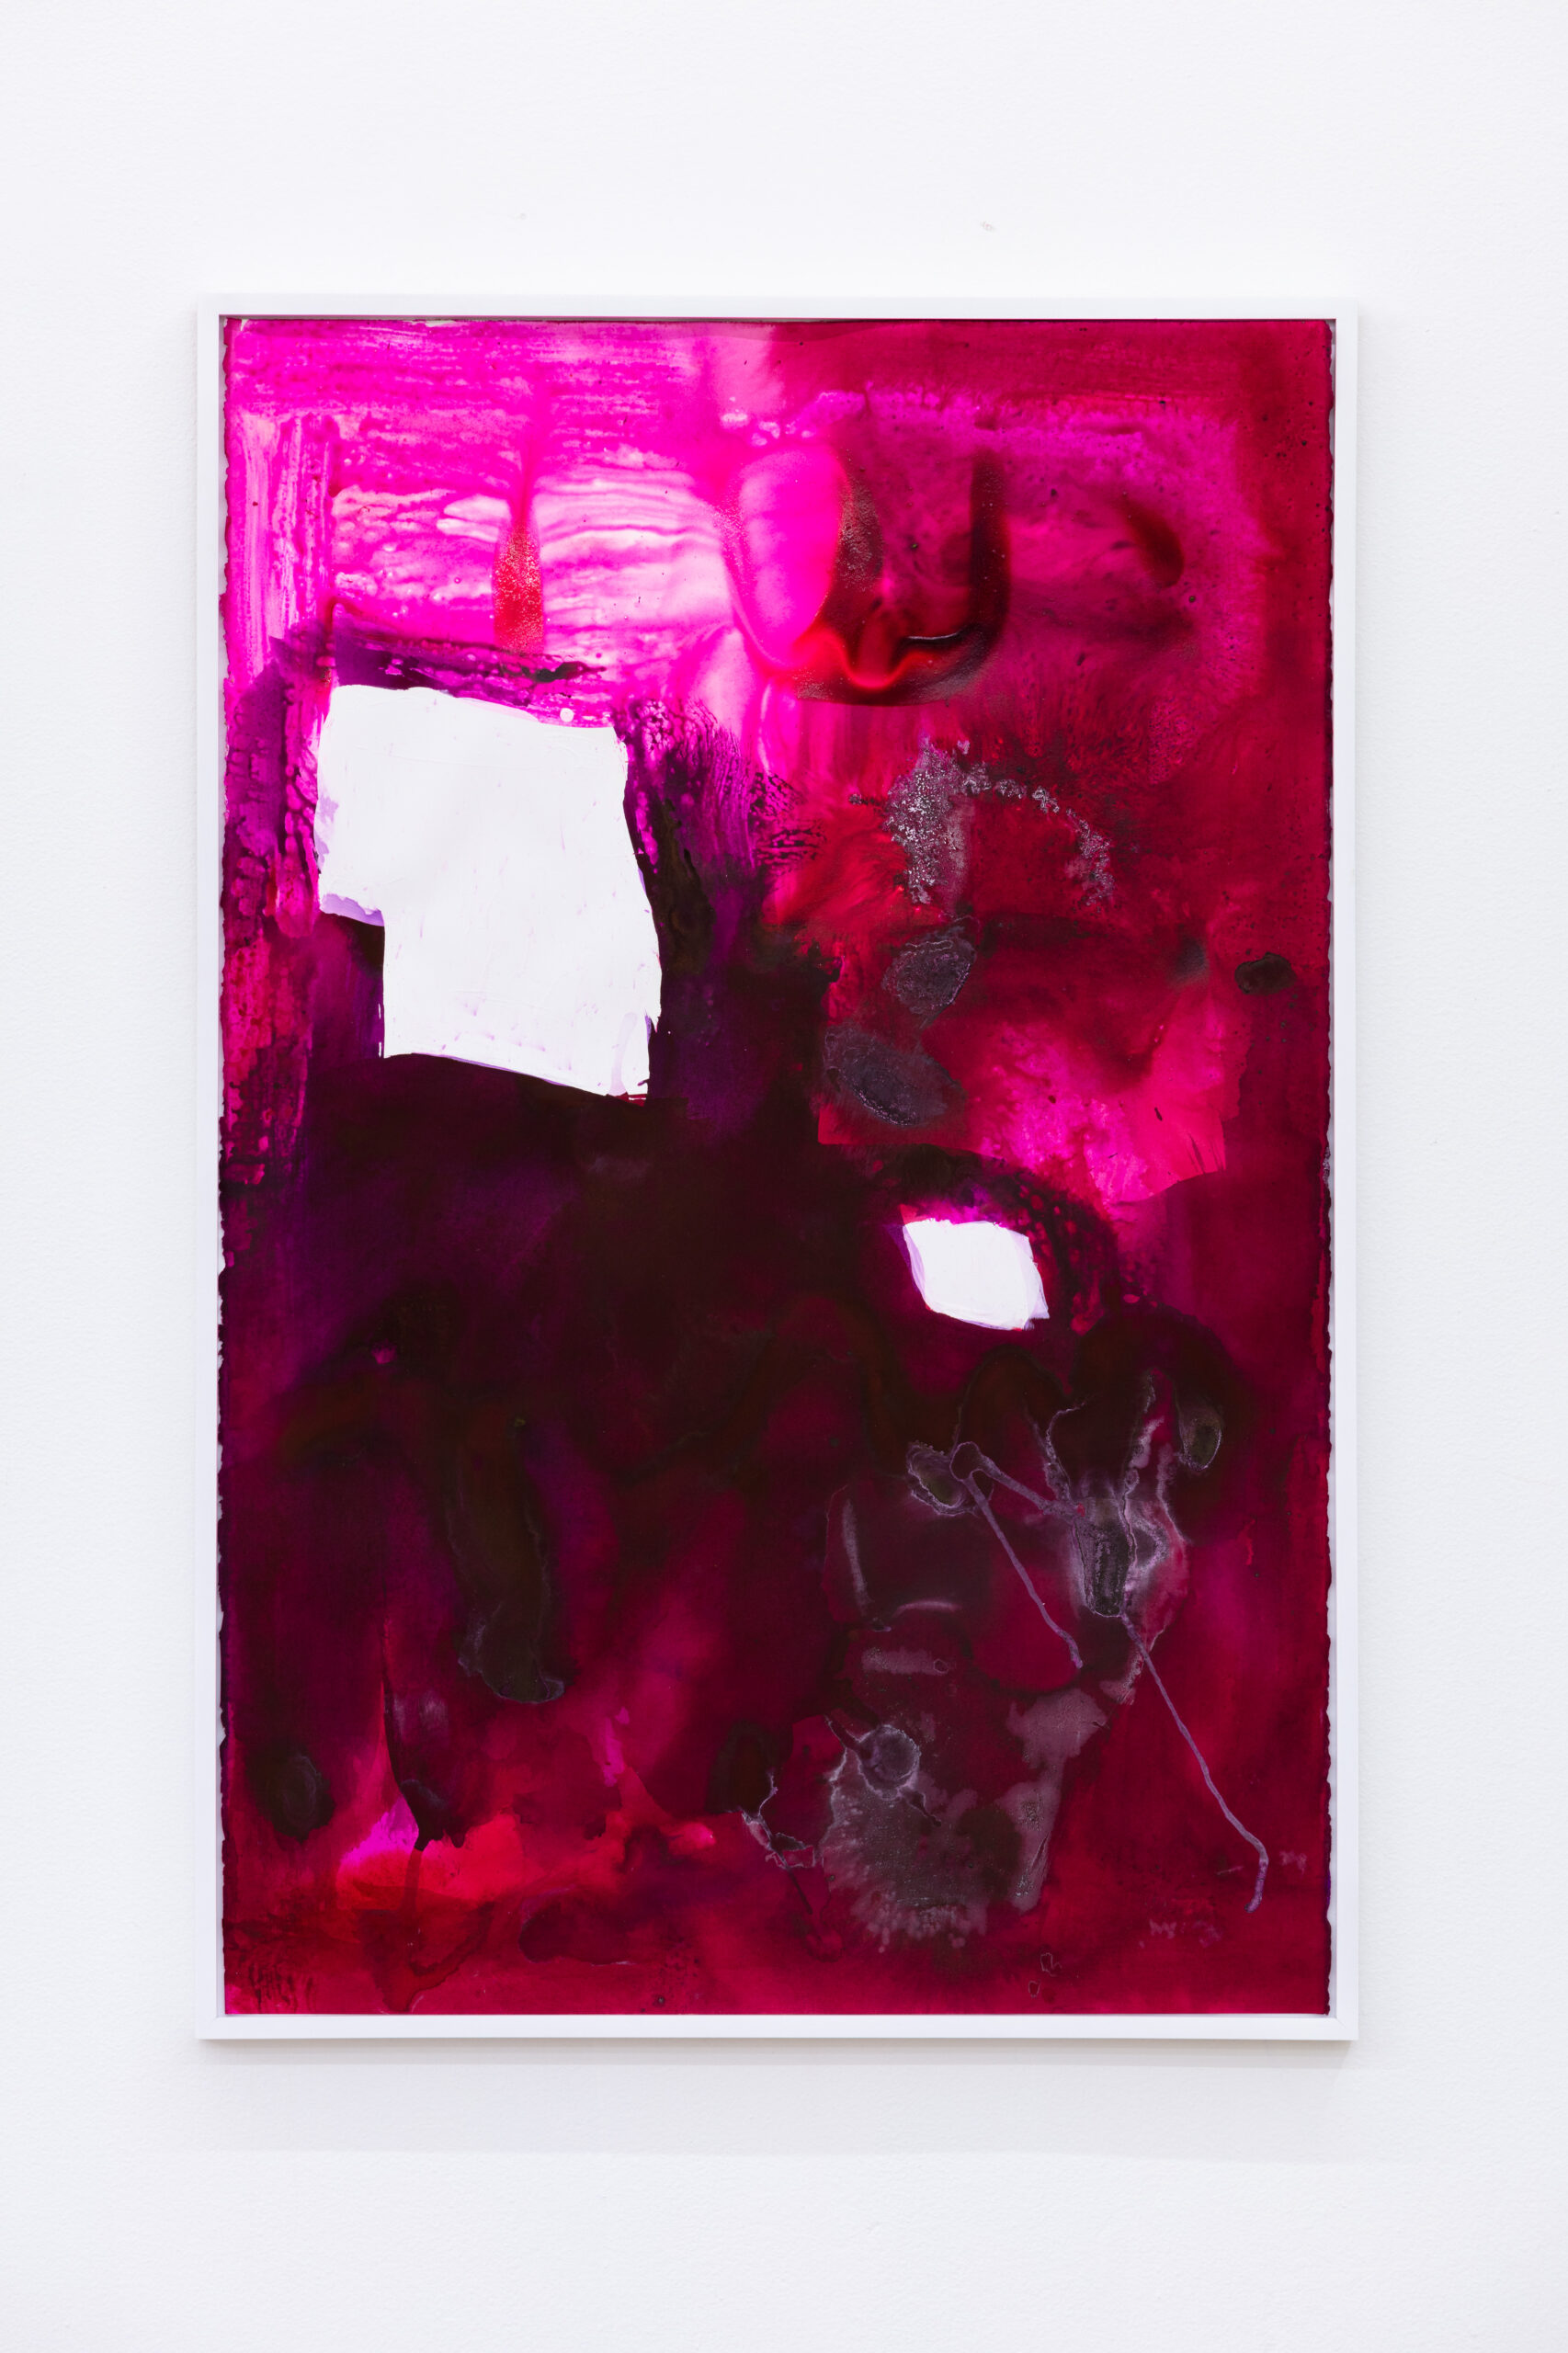 Anna Betbeze, Portal, 2021, gouache, dyes, and gesso on paper, 41 x 27.5 in.